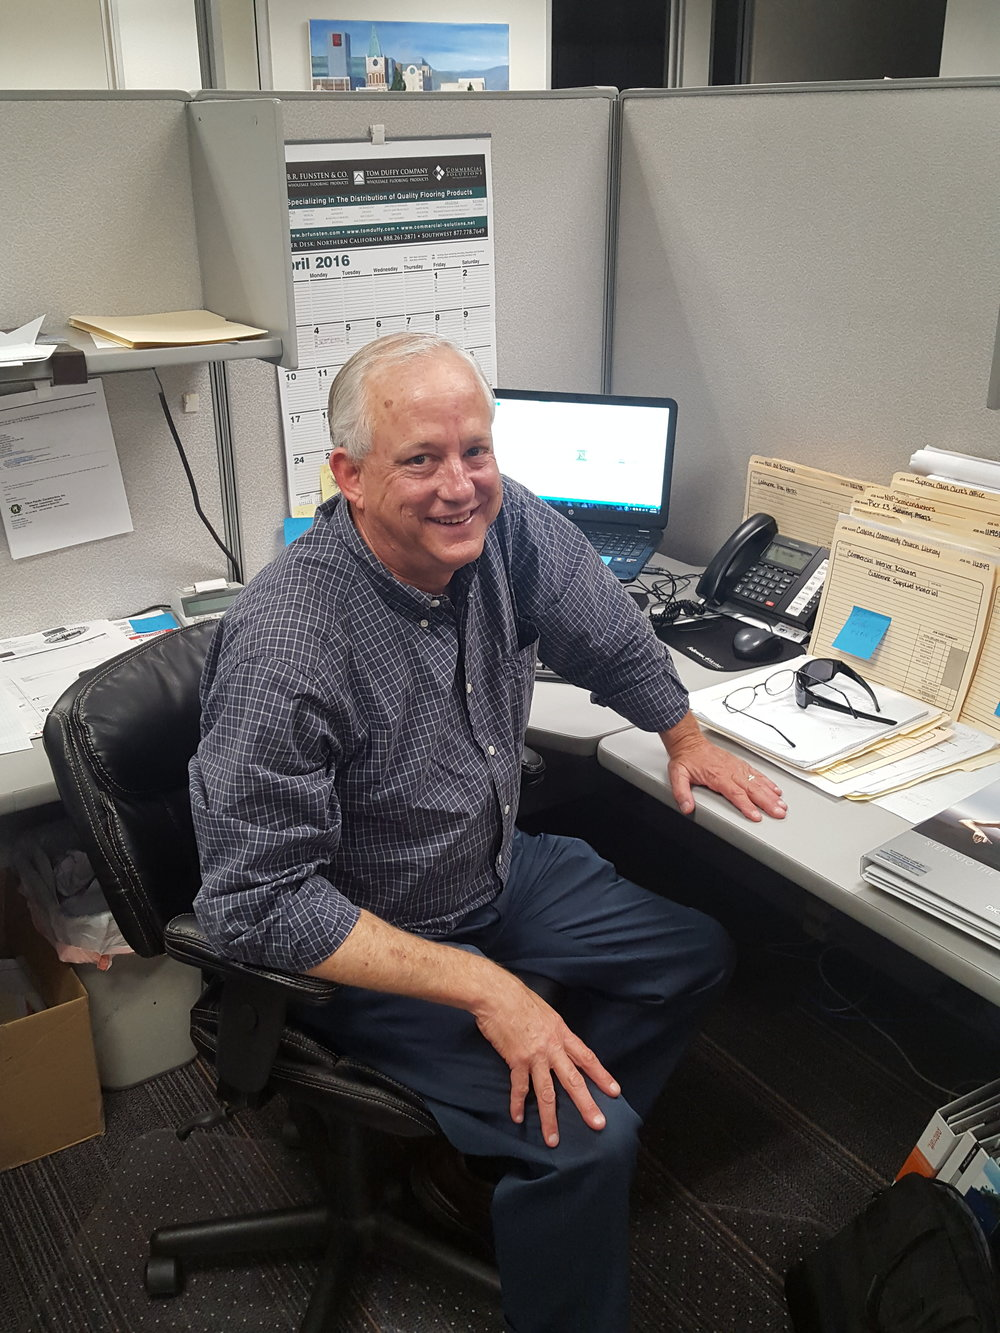 Jim Kinney, Project Manager 40 years in flooring and 3 years at FSI. JimK@flooring-solutions.com